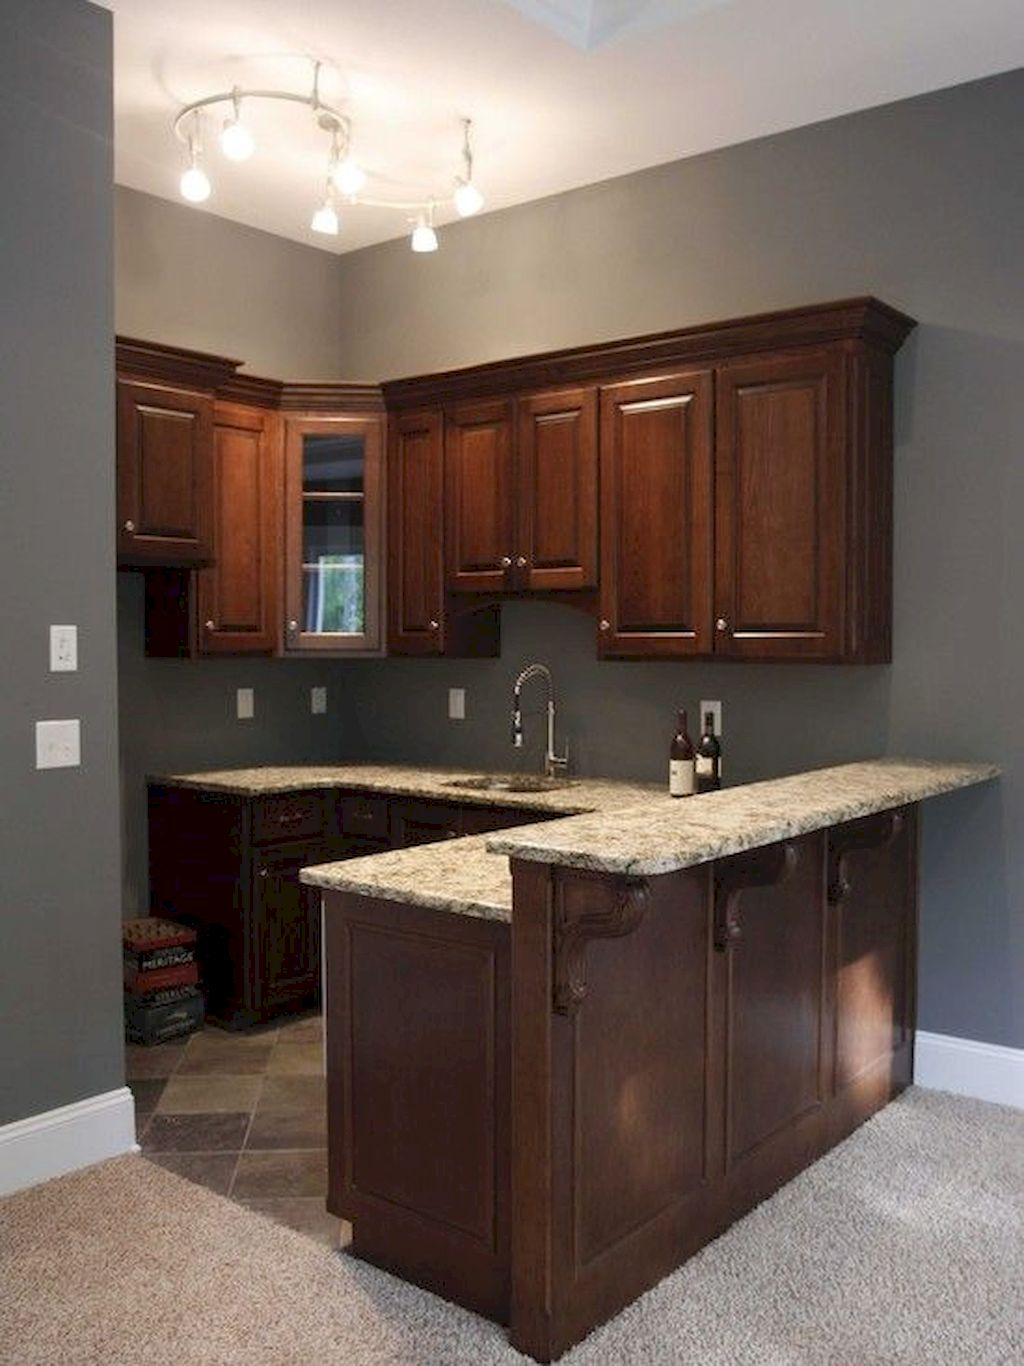 Kitchen Plan And Design For Small Room (65)